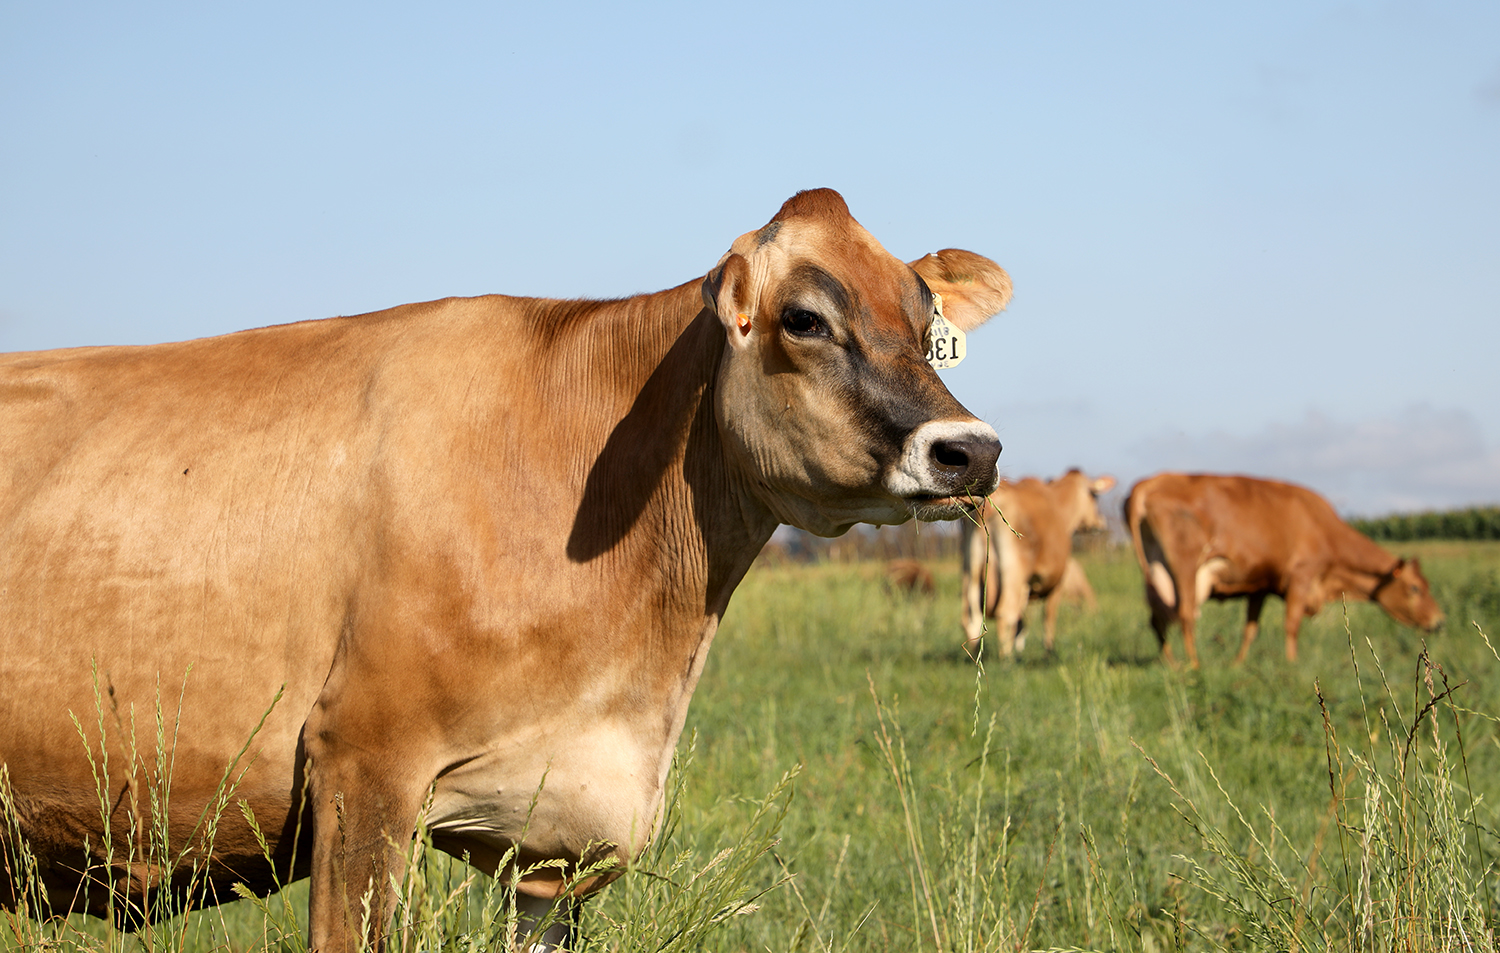 A Jersey Cow eating grass in a field